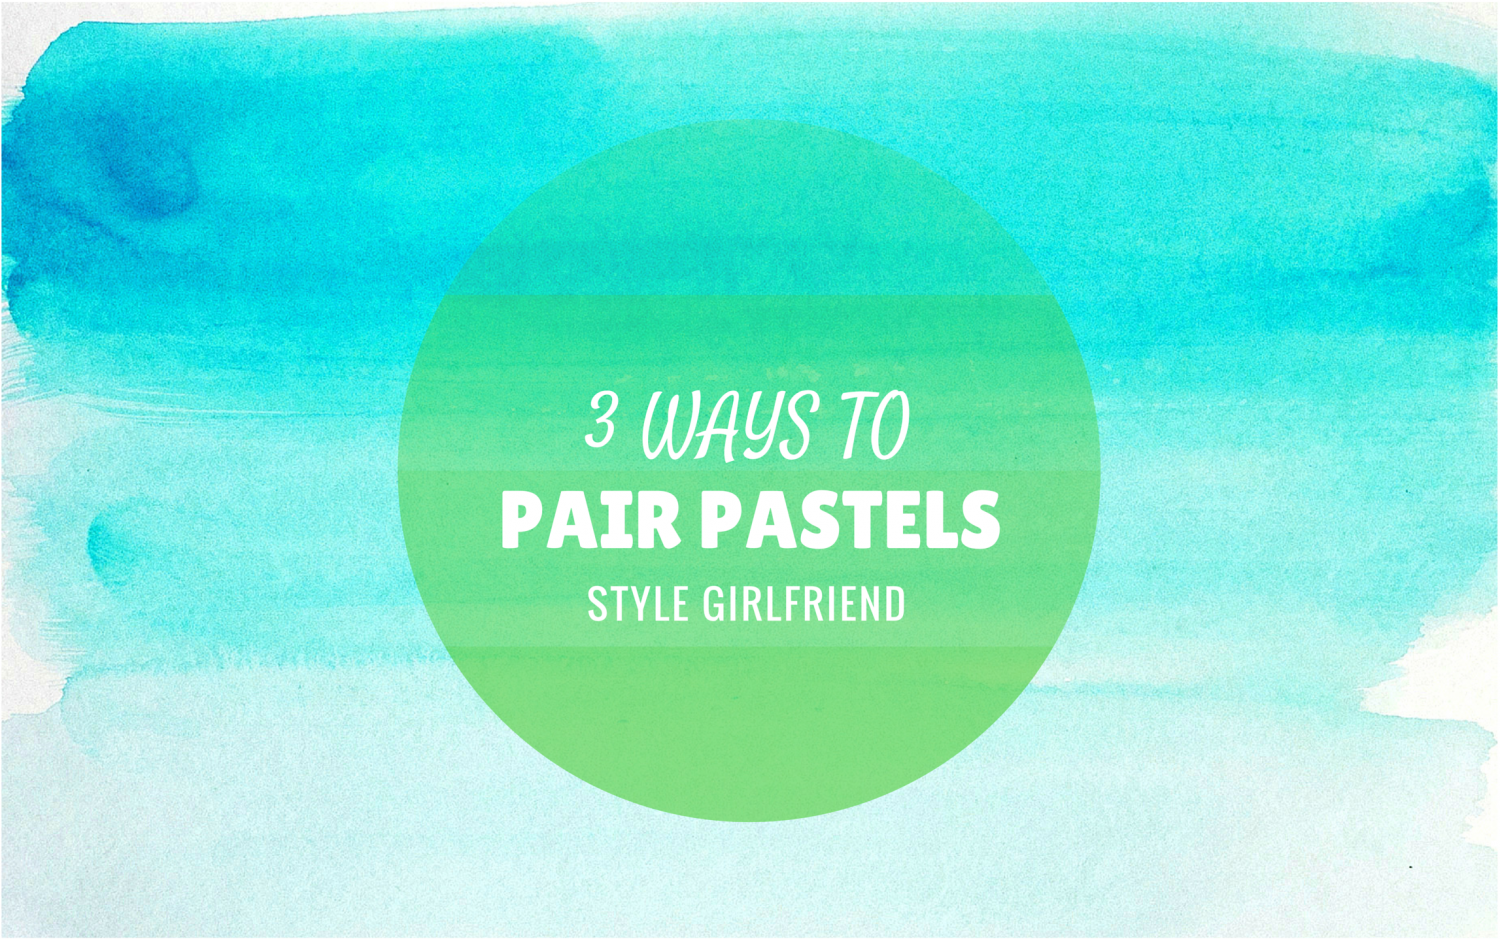 3 ways to pair pastels, how to wear pastels together, pairing pastels, guys spring style